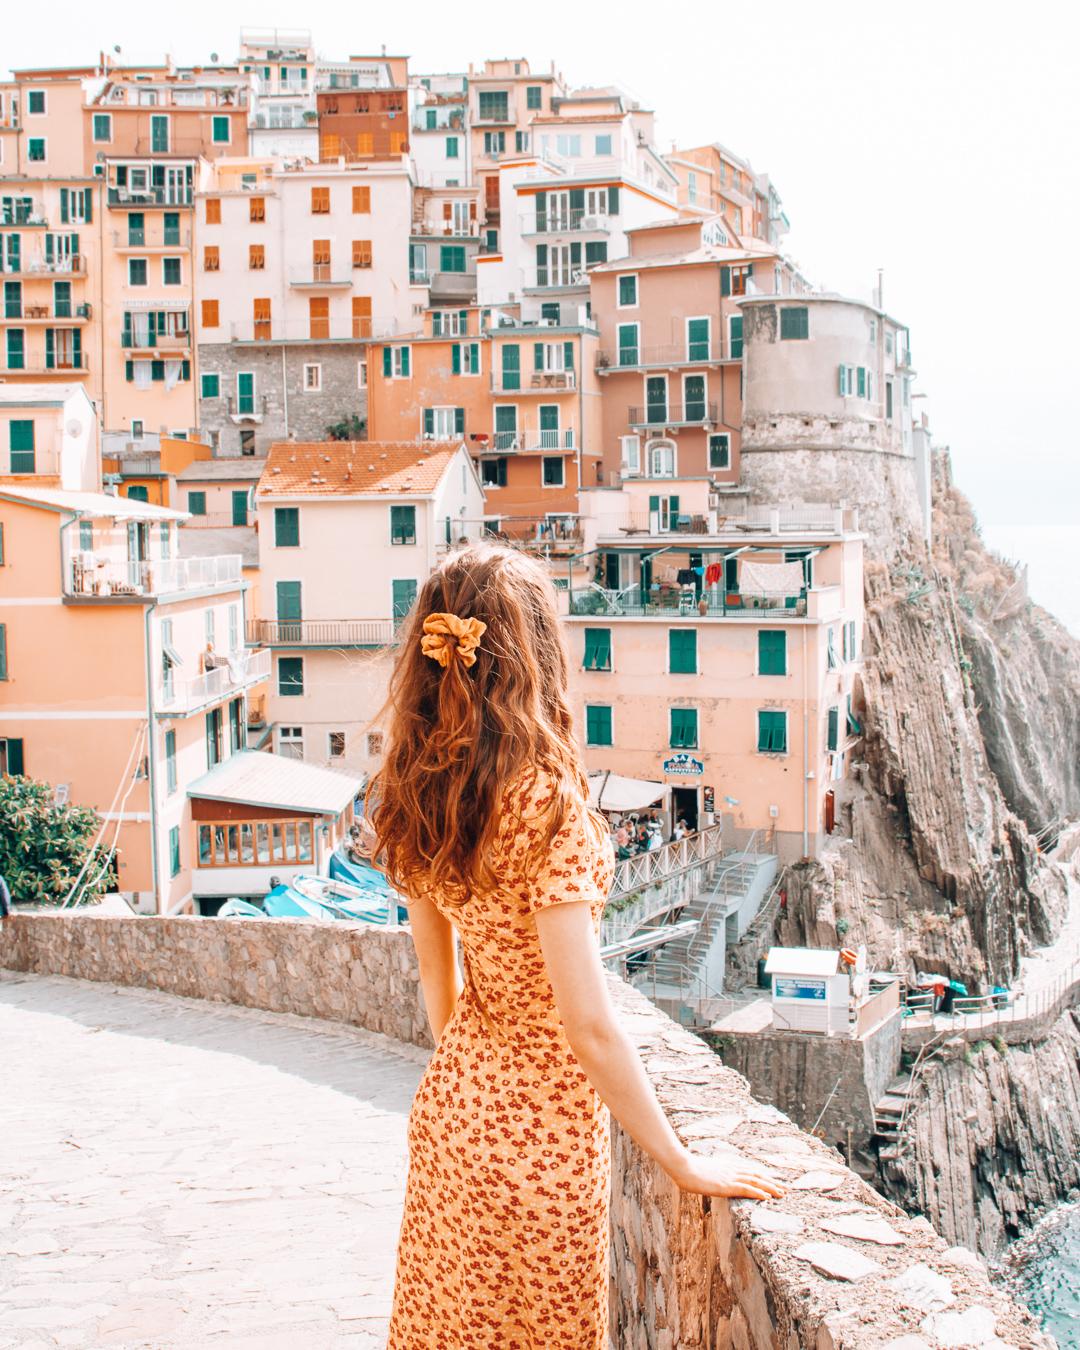 Girl looking at the houses in Manarola